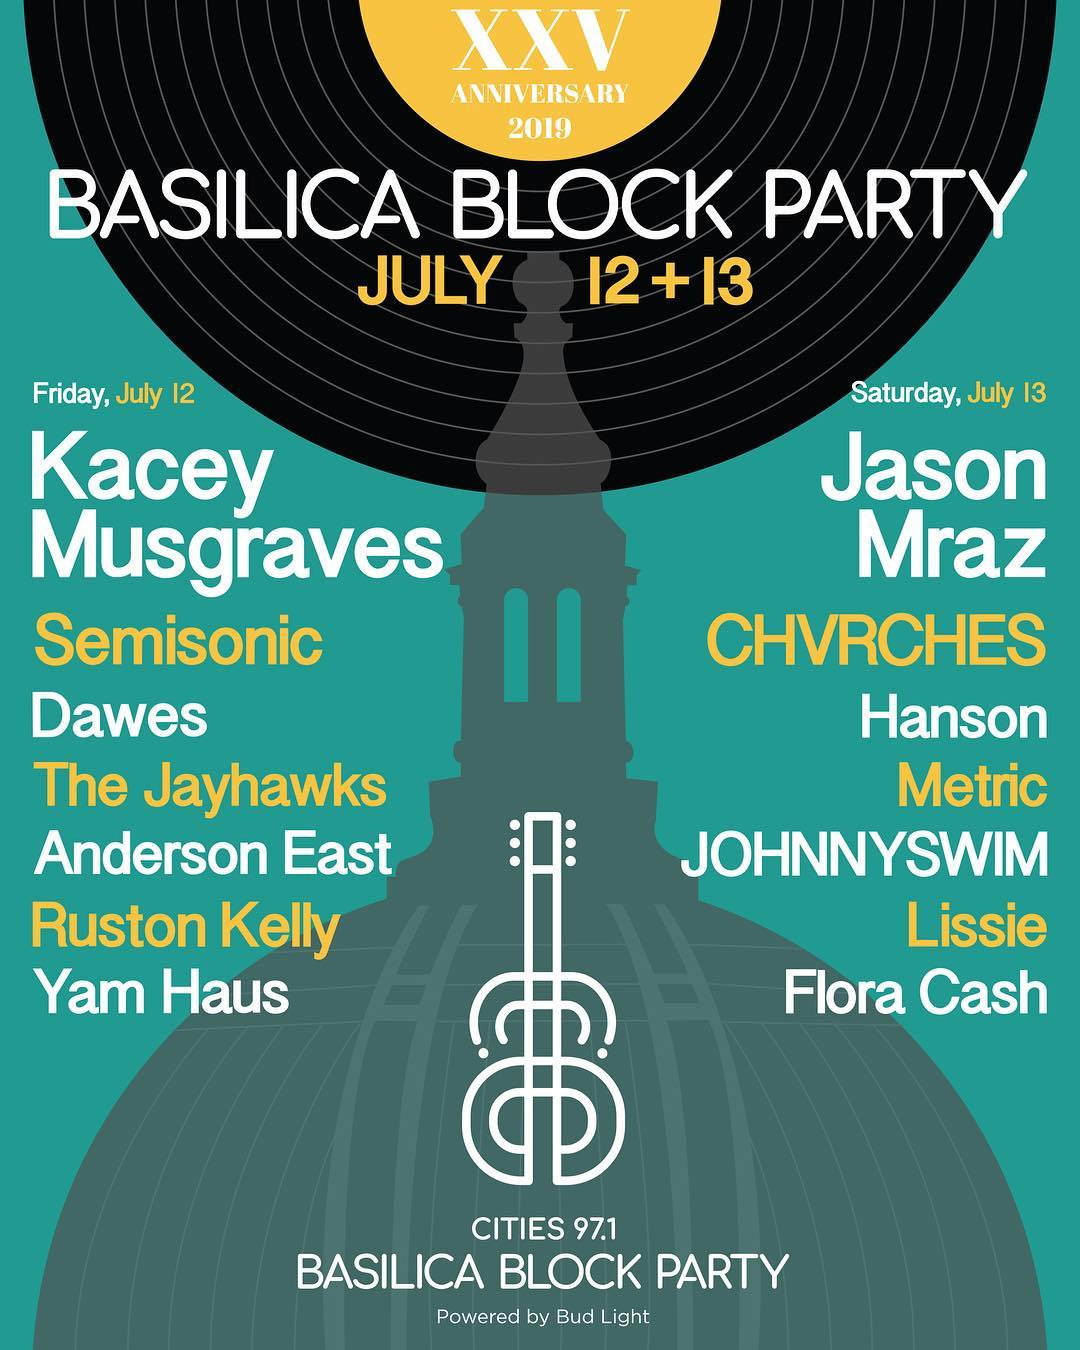 Basilica Block Party 2019 Kacey Musgraves